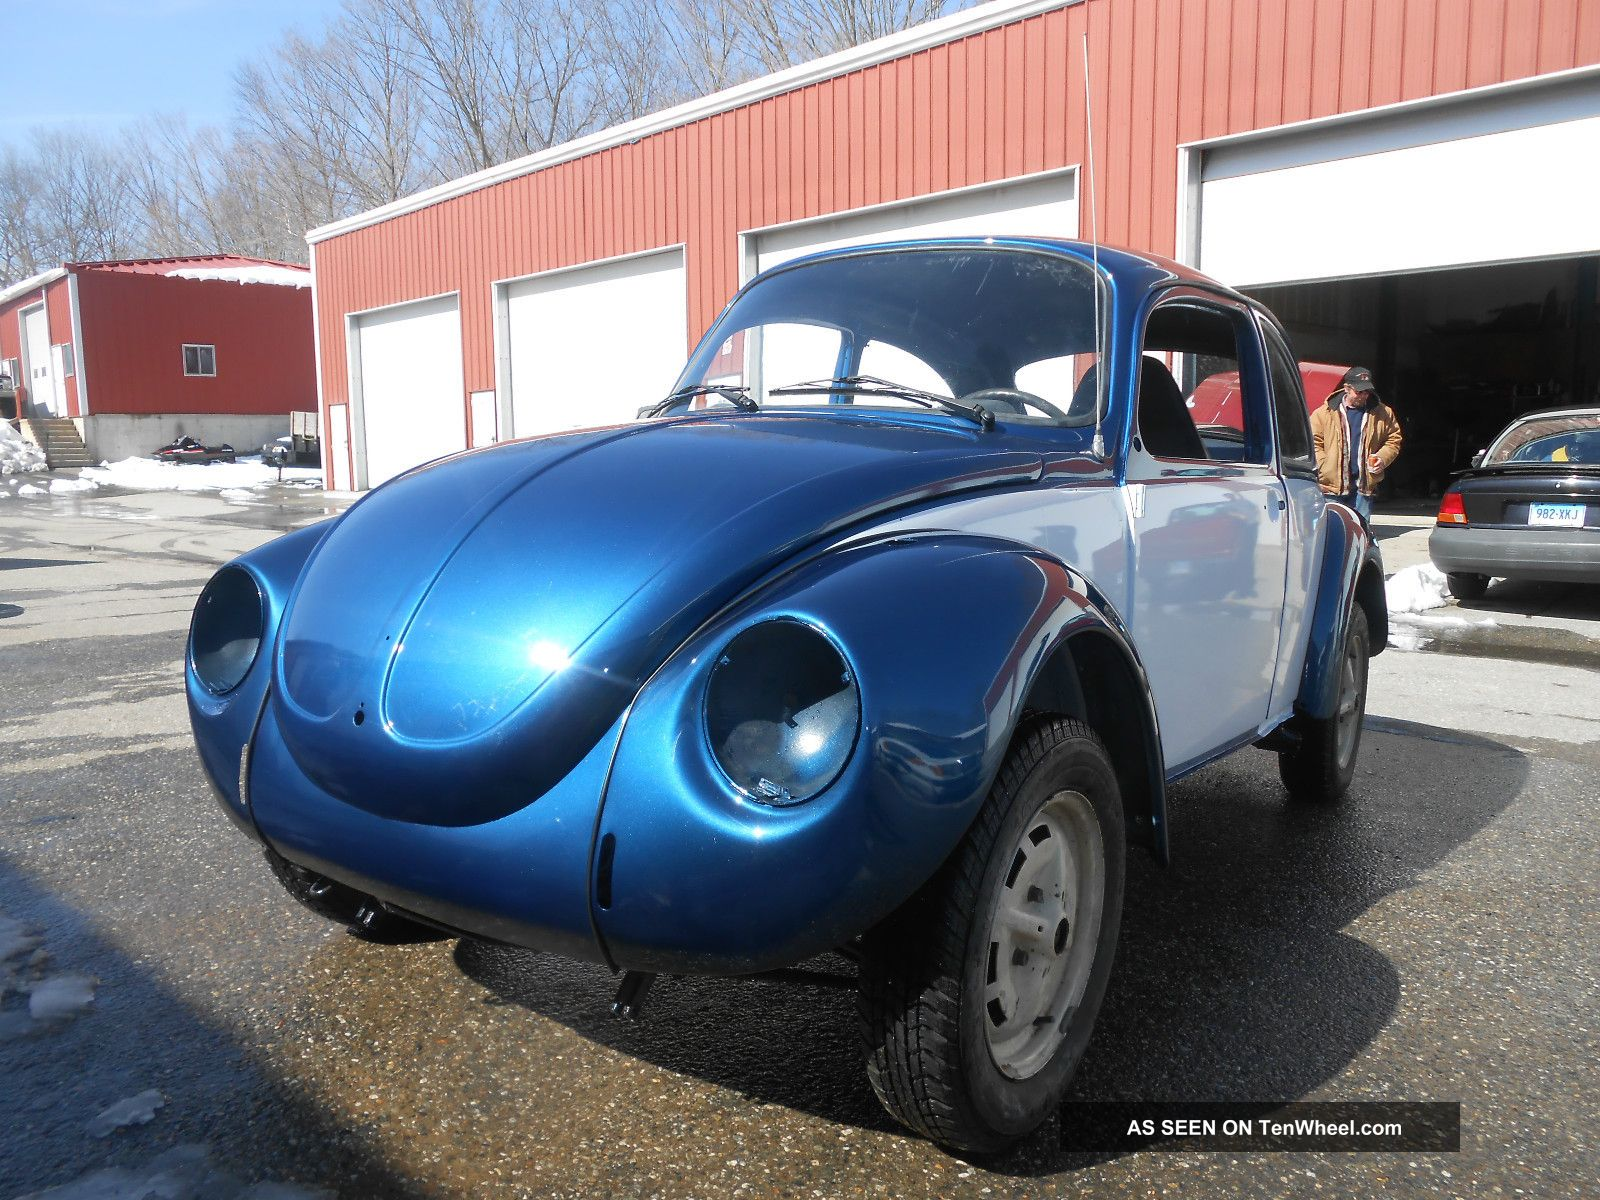 1973 Volkswagen Beetle Fresh Paint Beetle-New photo